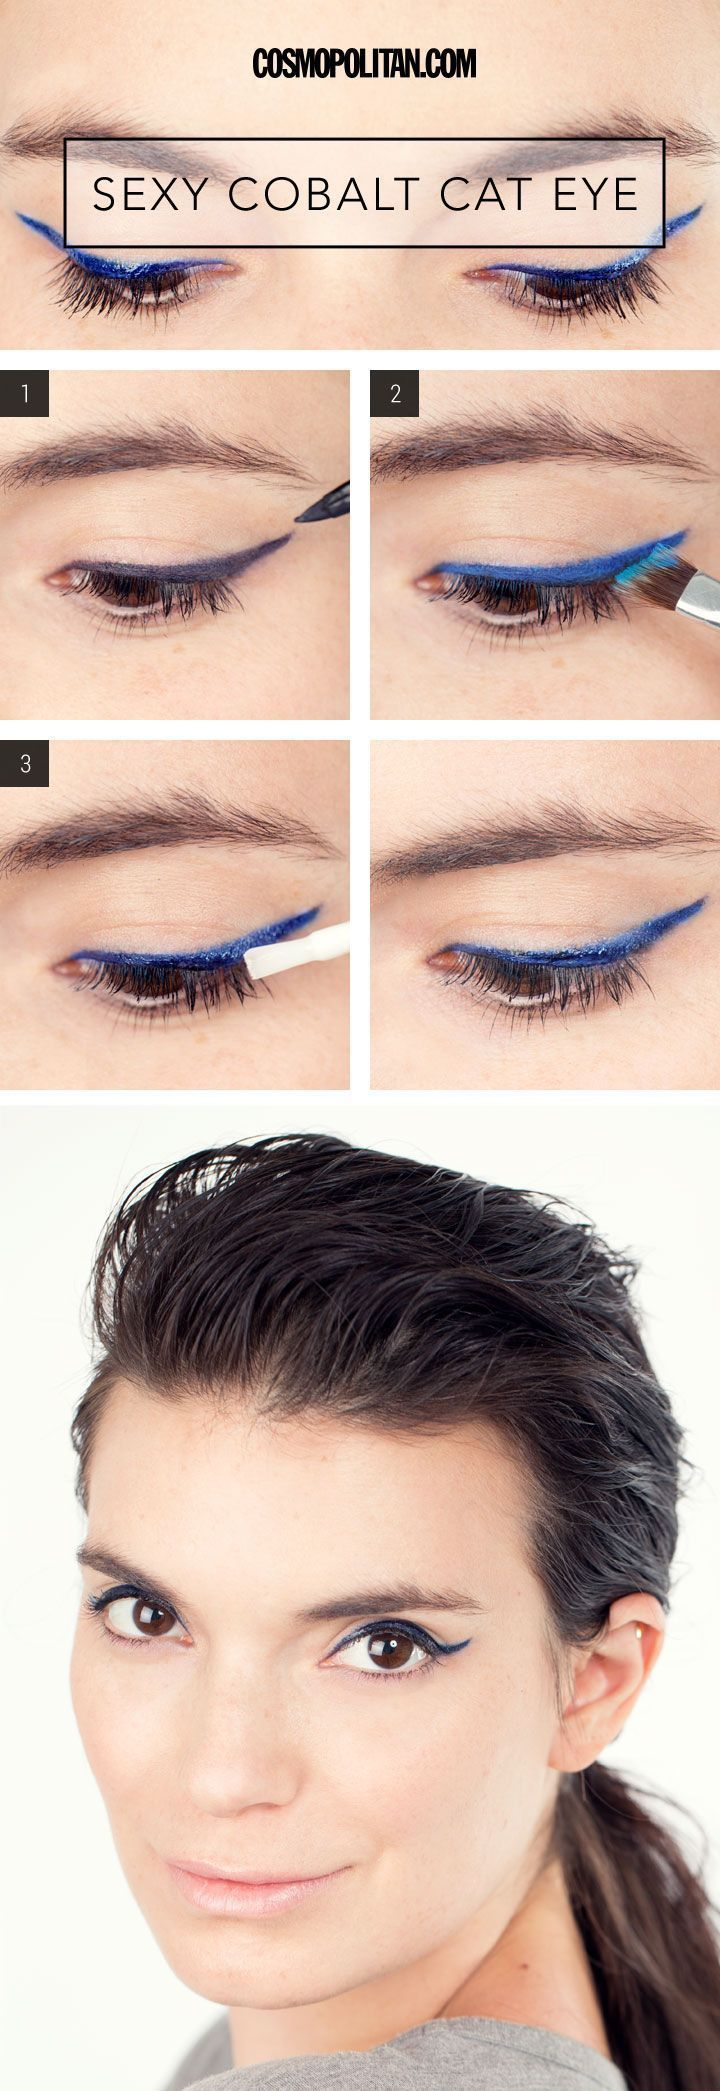 SEXY BLUE CAT EYE MAKEUP TUTORIAL: Winged eyeliner doesn't have to be black to look chic. Take a cue from this cobalt cat eye and use the tips below from makeup artist Lauren Cosenza to copy this cool-girl look. Click through to see this colorful and edgy cat eye beauty look, and for the easy tutorial you need to do it! Find more pretty makeup looks covering a complete range of styles from edgy and funky ideas to natural and pretty looks at Cosmopolitan.com. #Coolcatmakeupideas